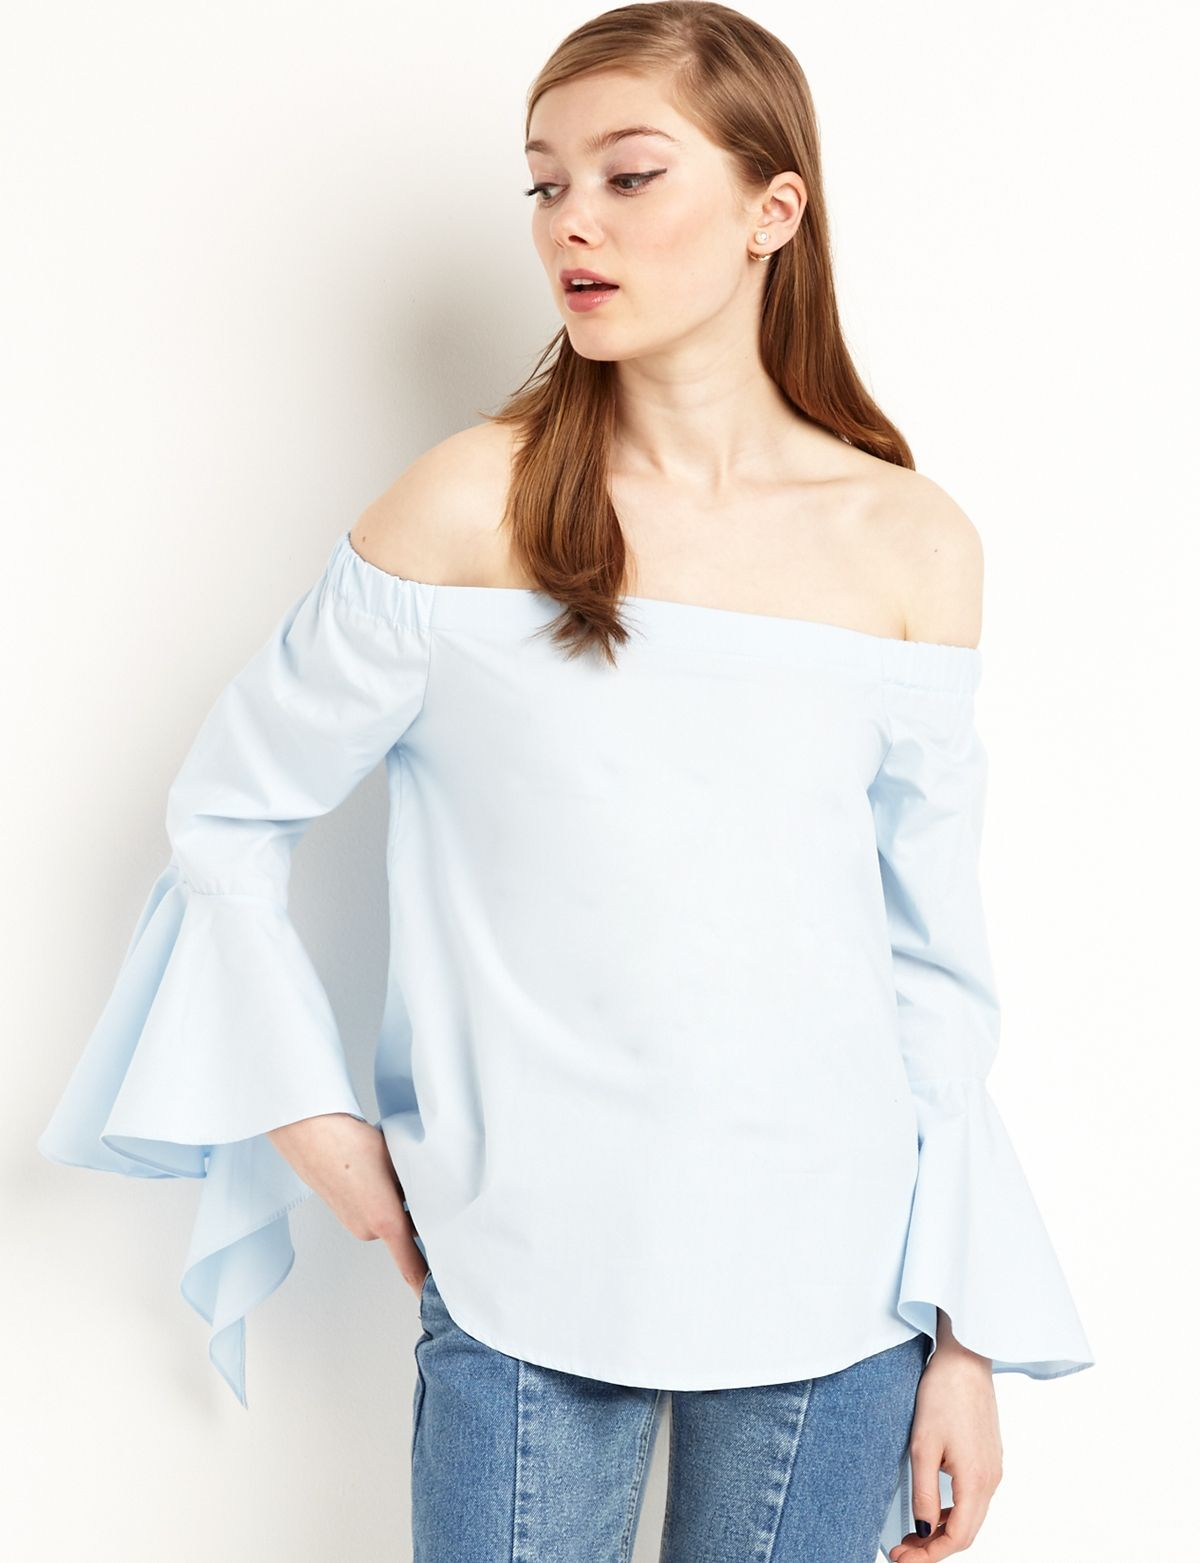 Summer 2016 Staples Now Up on   Ruffle sleeve, Light blue and Ruffles